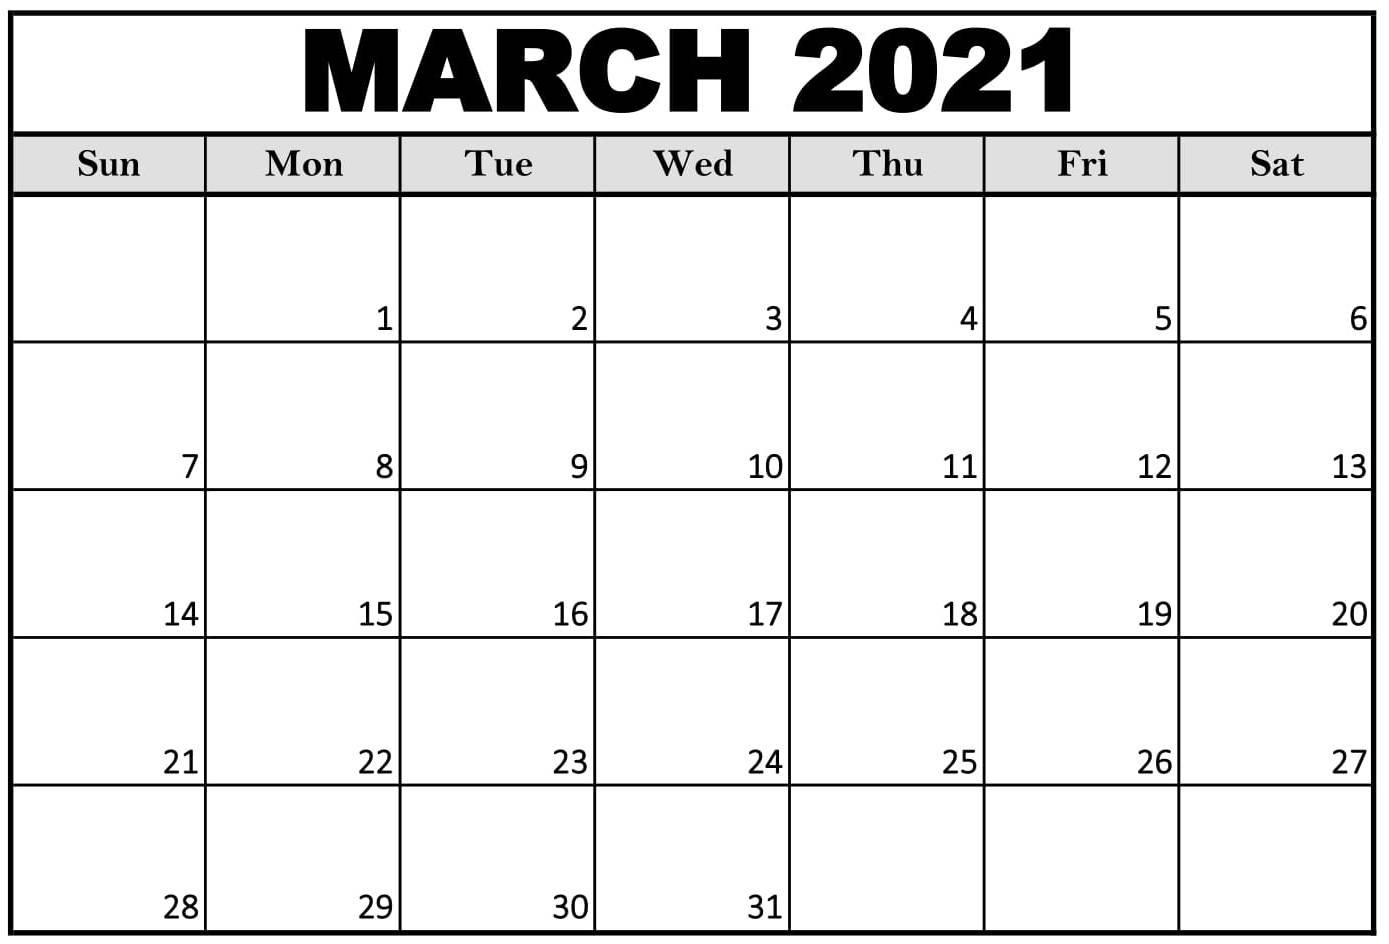 March 2021 Printable Calendar Cute With Notes Web Galaxy